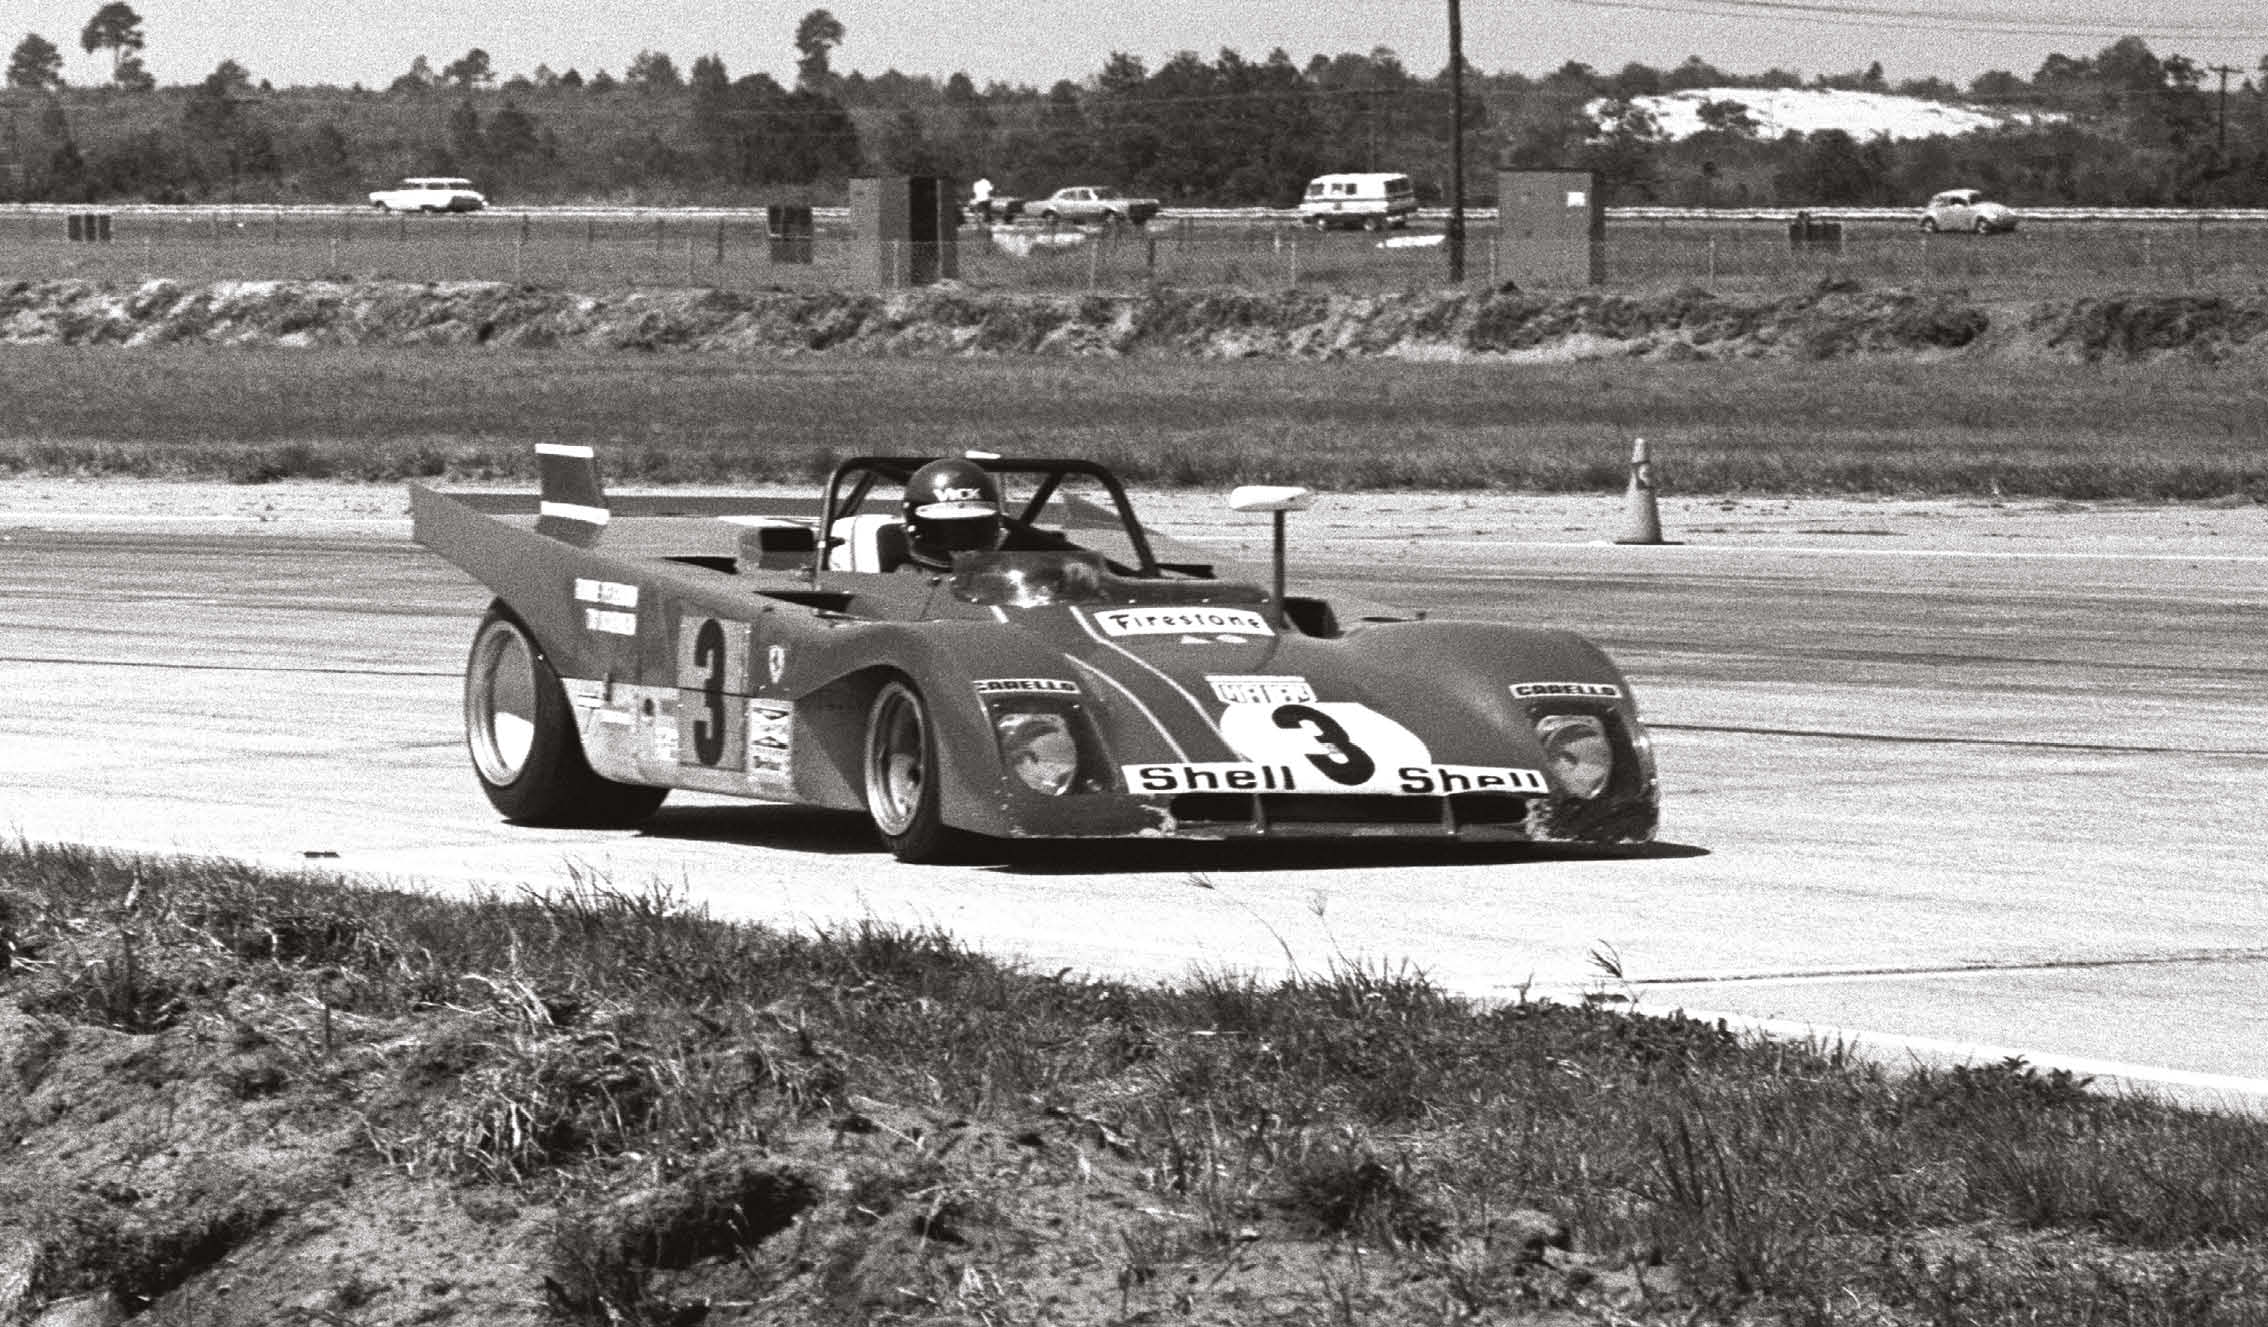 Everyday America drifts past in the background as Ronnie Peterson races in the 1972 Sebring 12 Hours. He and Tim Schenken took their Ferrari 312PB to second, behind team-mates Mario Andretti and Jacky Ickx